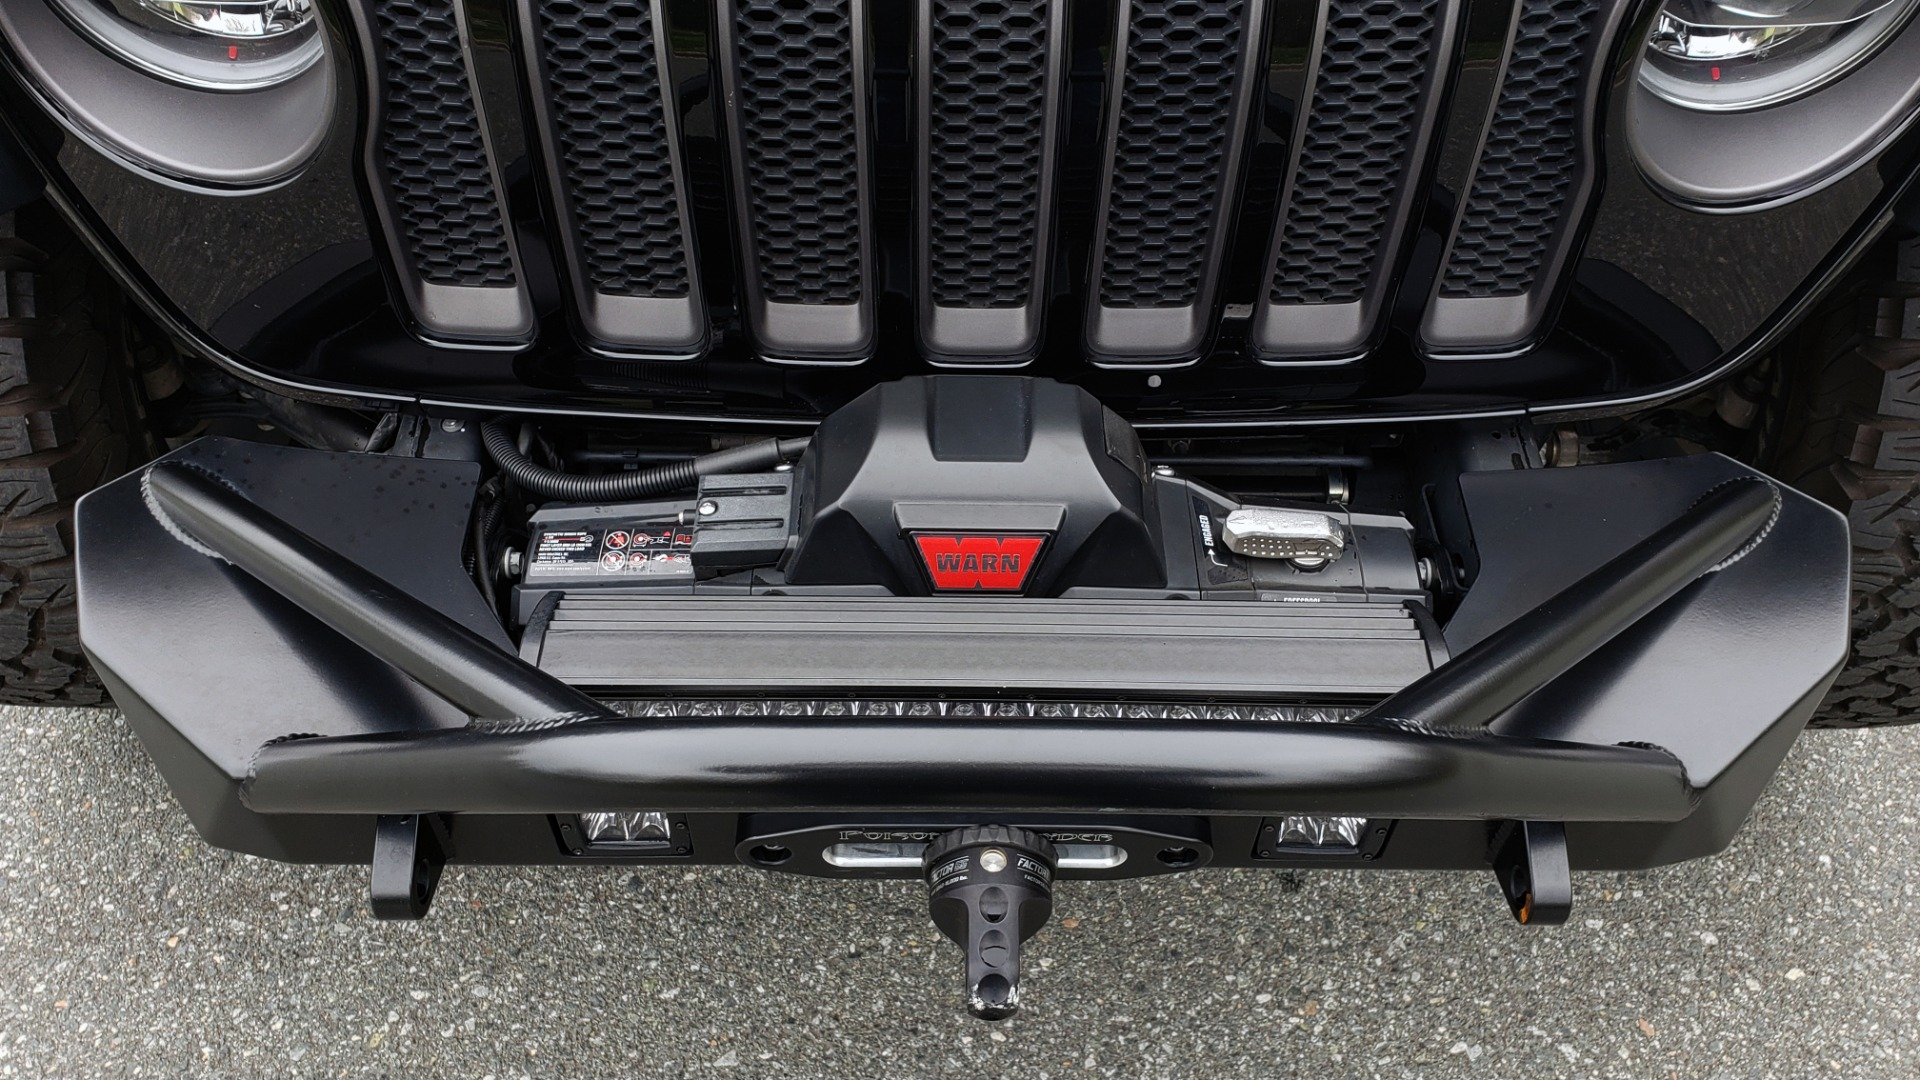 Used 2019 Jeep WRANGLER UNLIMITED RUBICON 4WD / V6 / 8-SPD AUTO / NAV / PWR TOP / REARVIEW for sale Sold at Formula Imports in Charlotte NC 28227 26